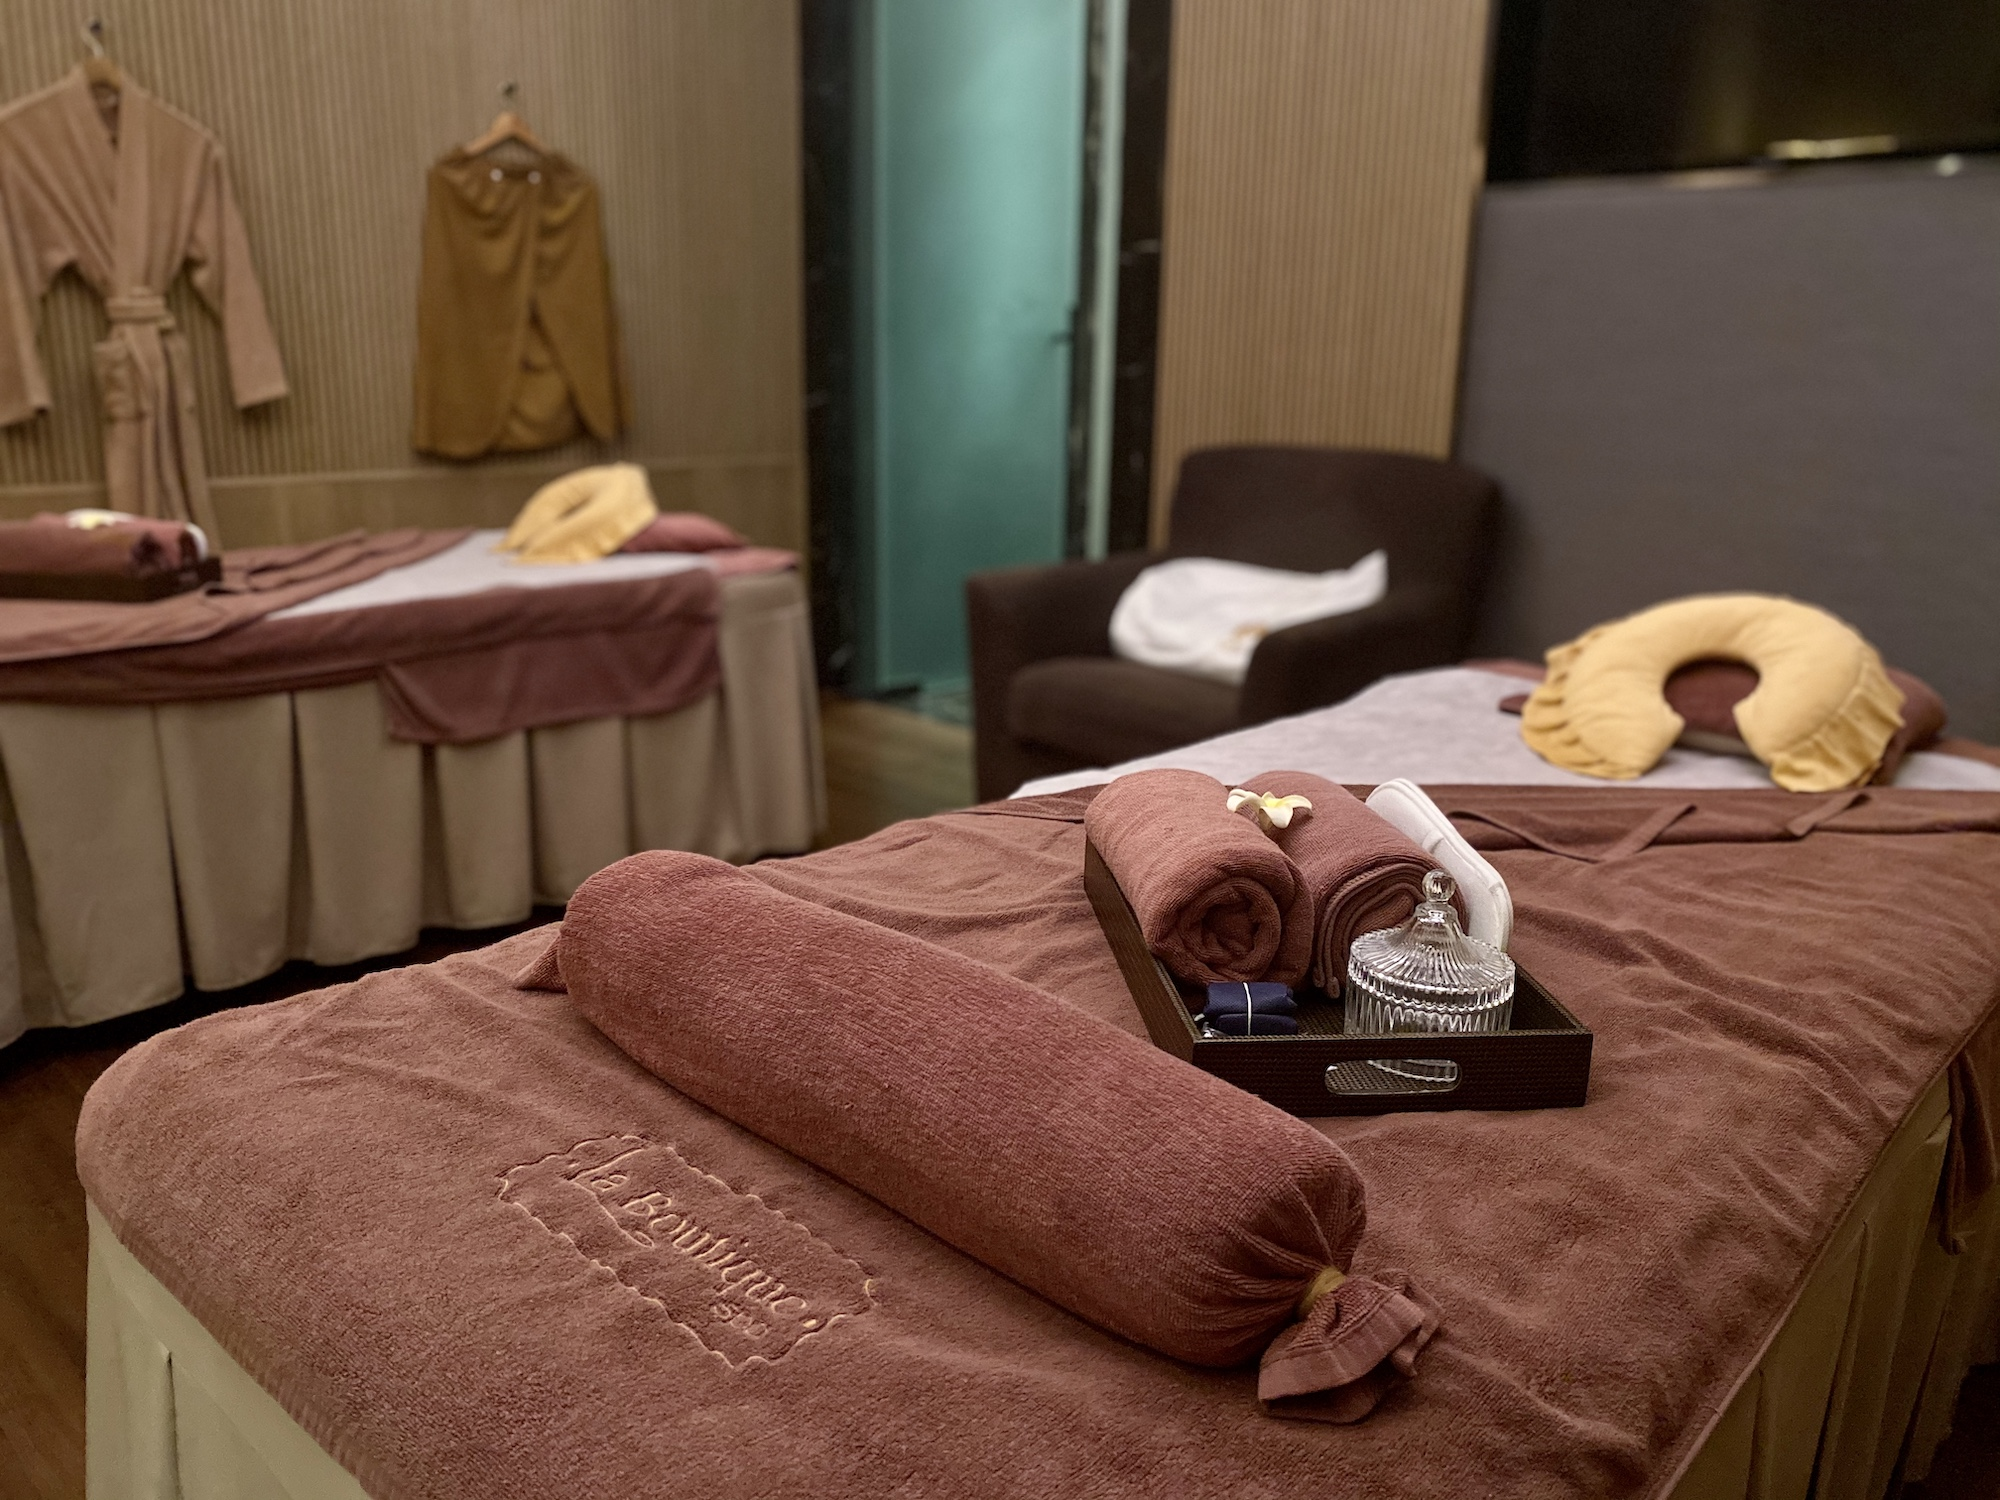 la boutique spa one oasis coloane macau couple room beds